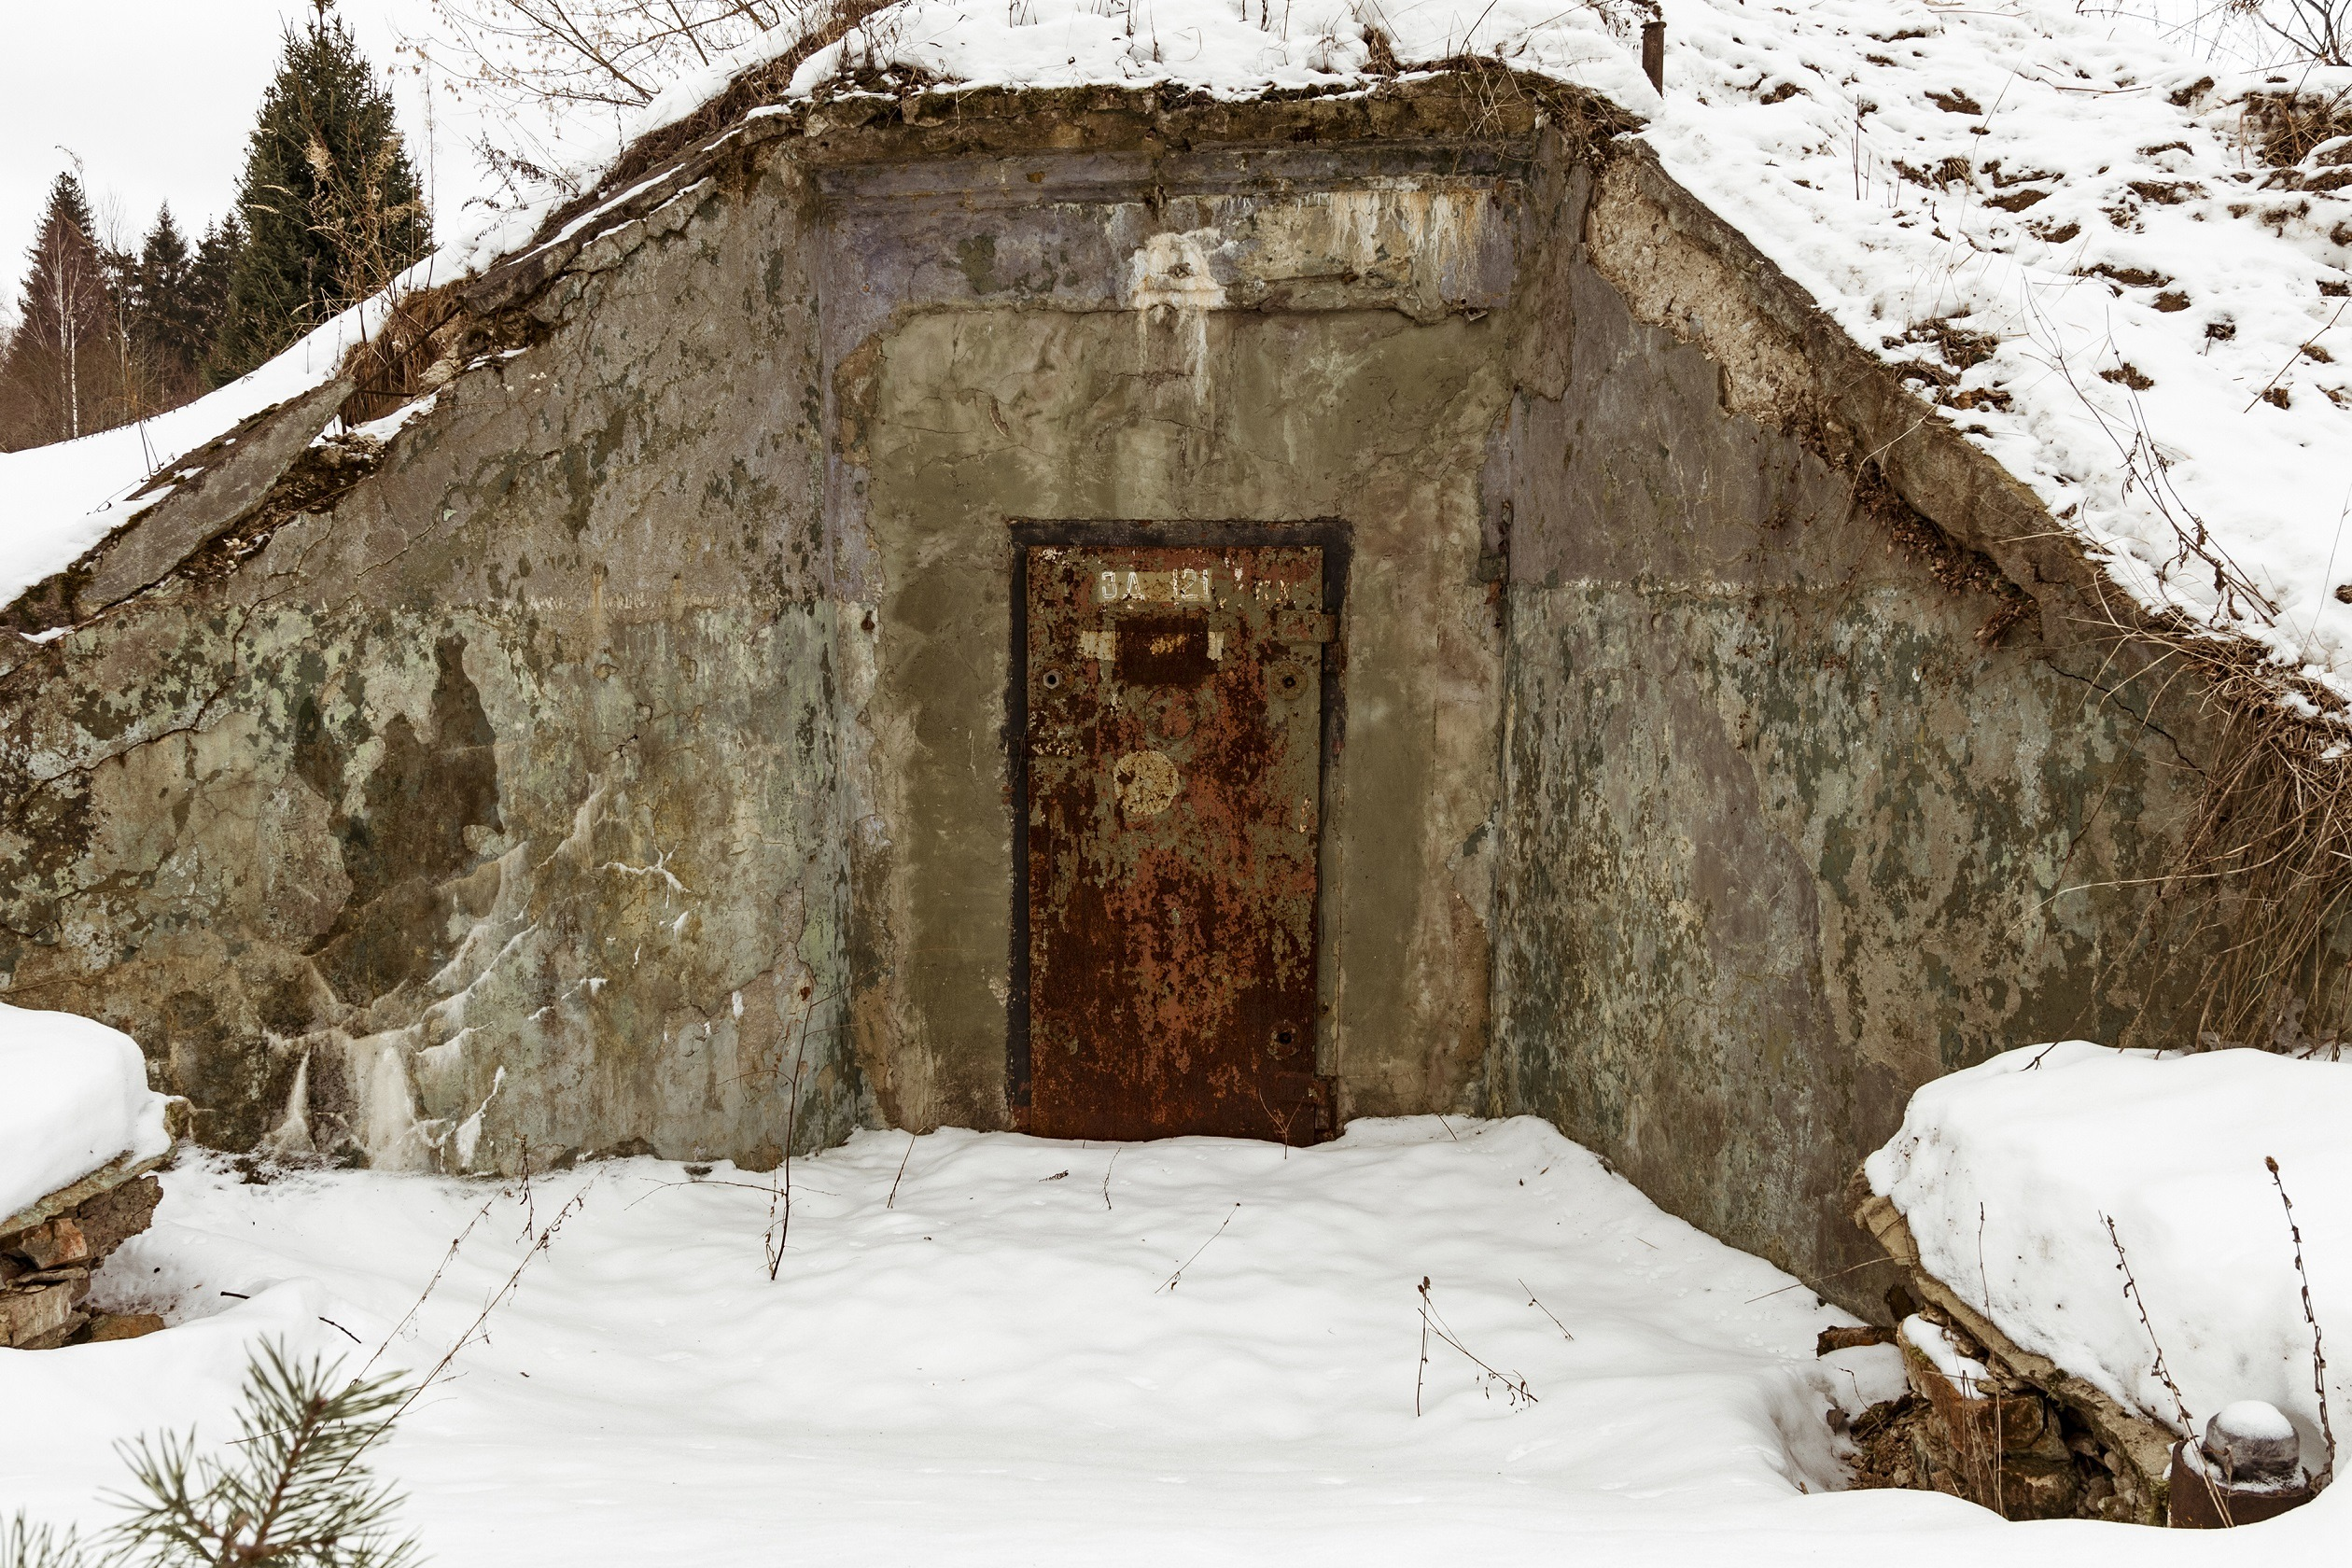 Nuclear Blast Shelter